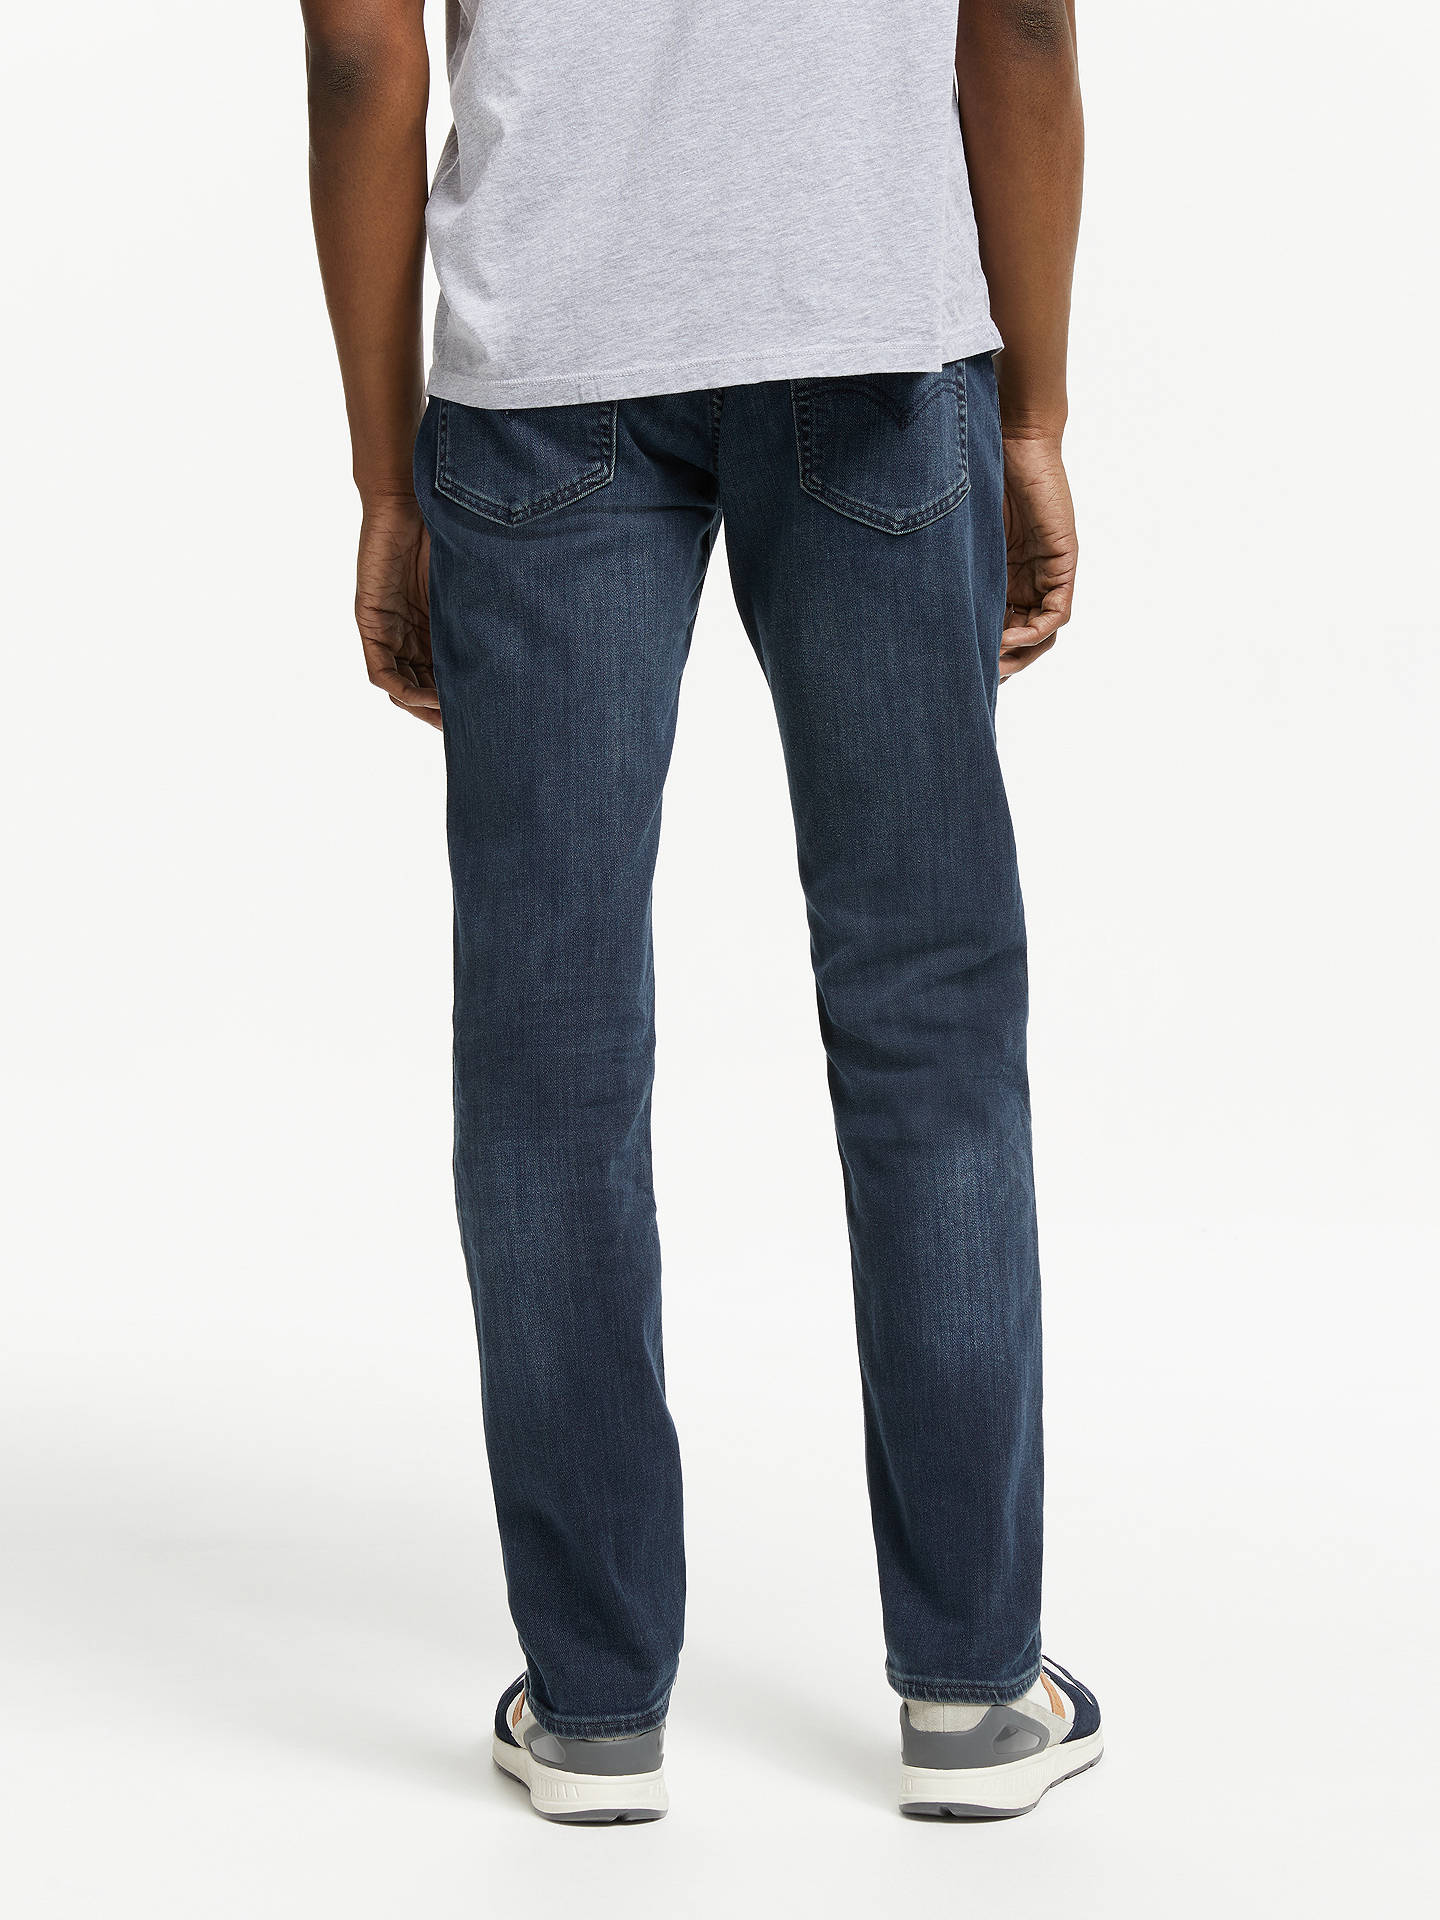 BuyLevi's 511 Slim Fit Jeans, Headed South, 30S Online at johnlewis.com